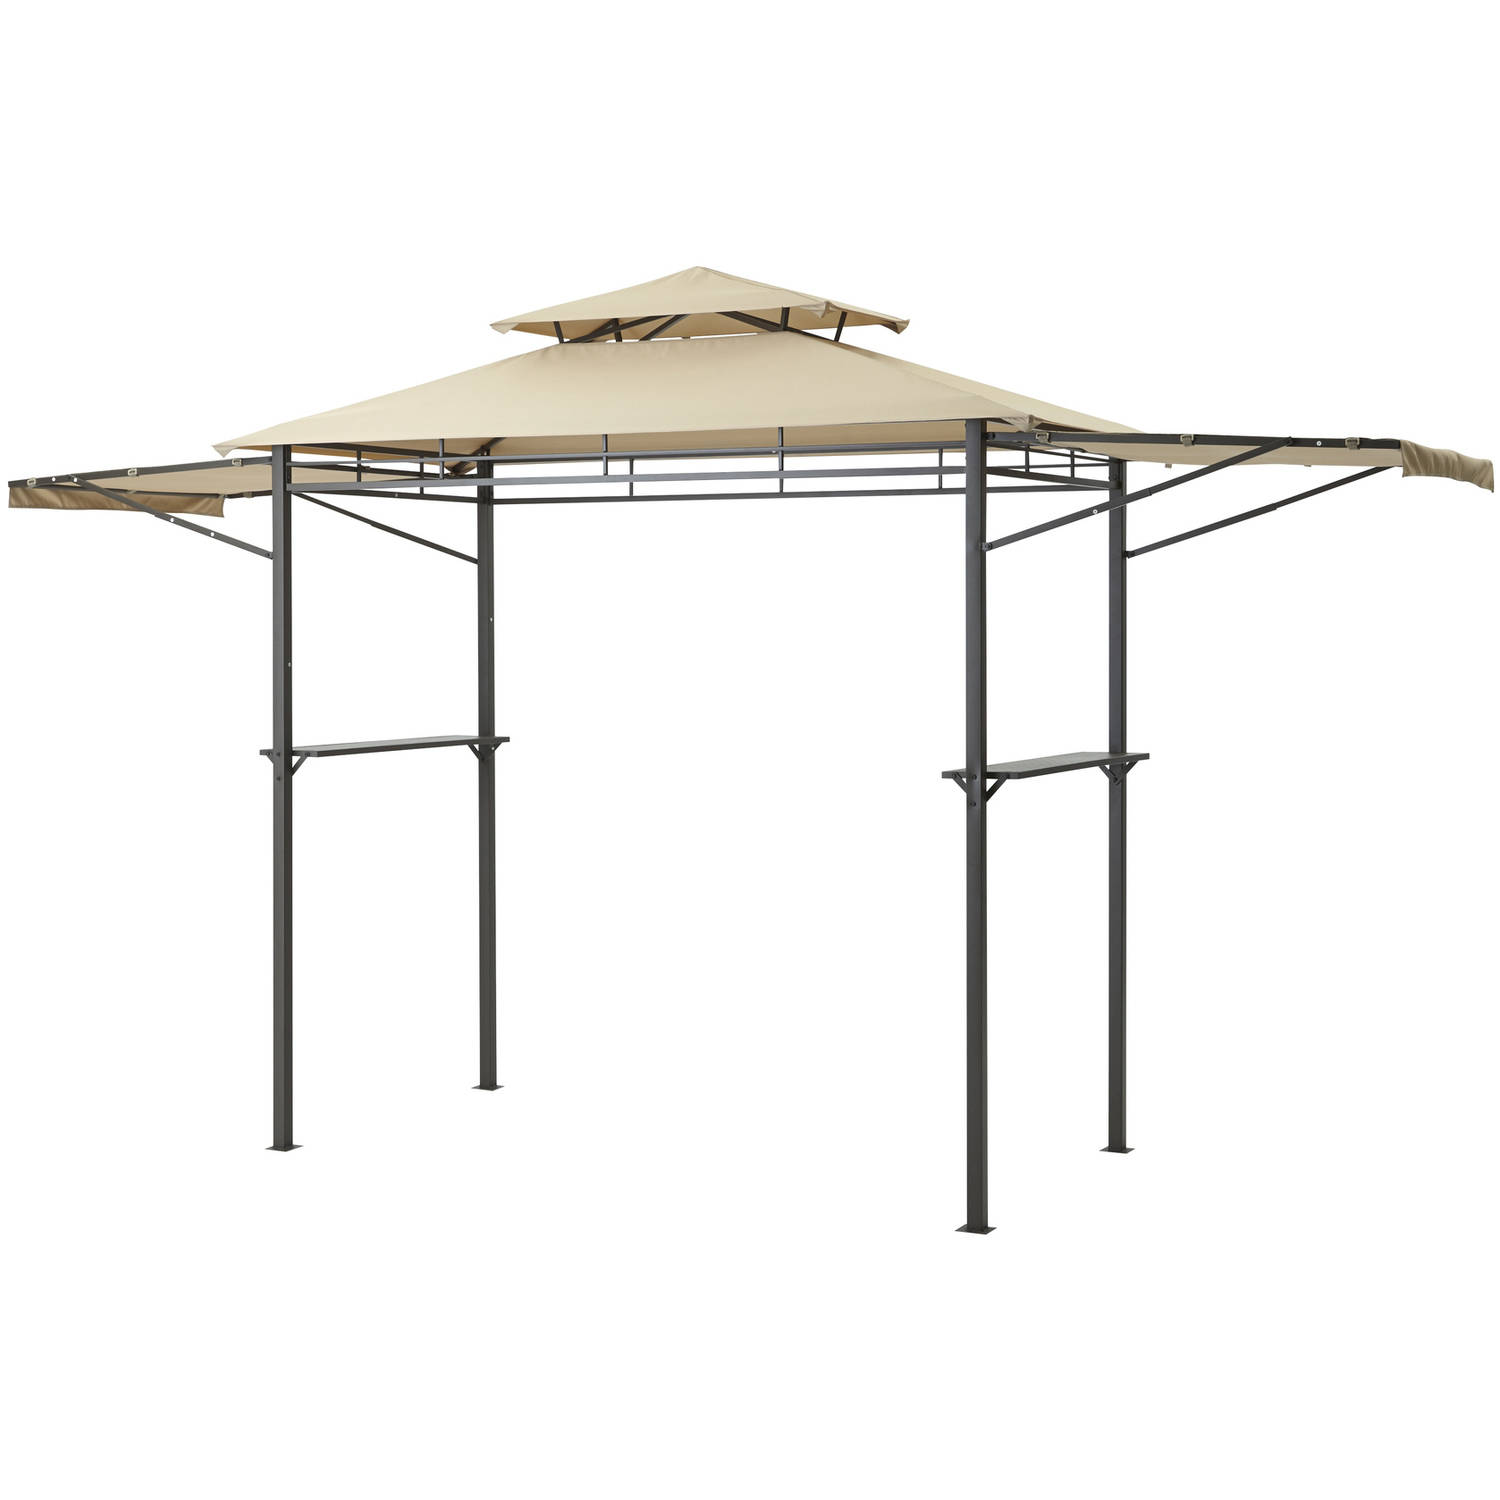 Mainstays Grill Gazebo with Adjustable Awning, Light Brown by Gazebos